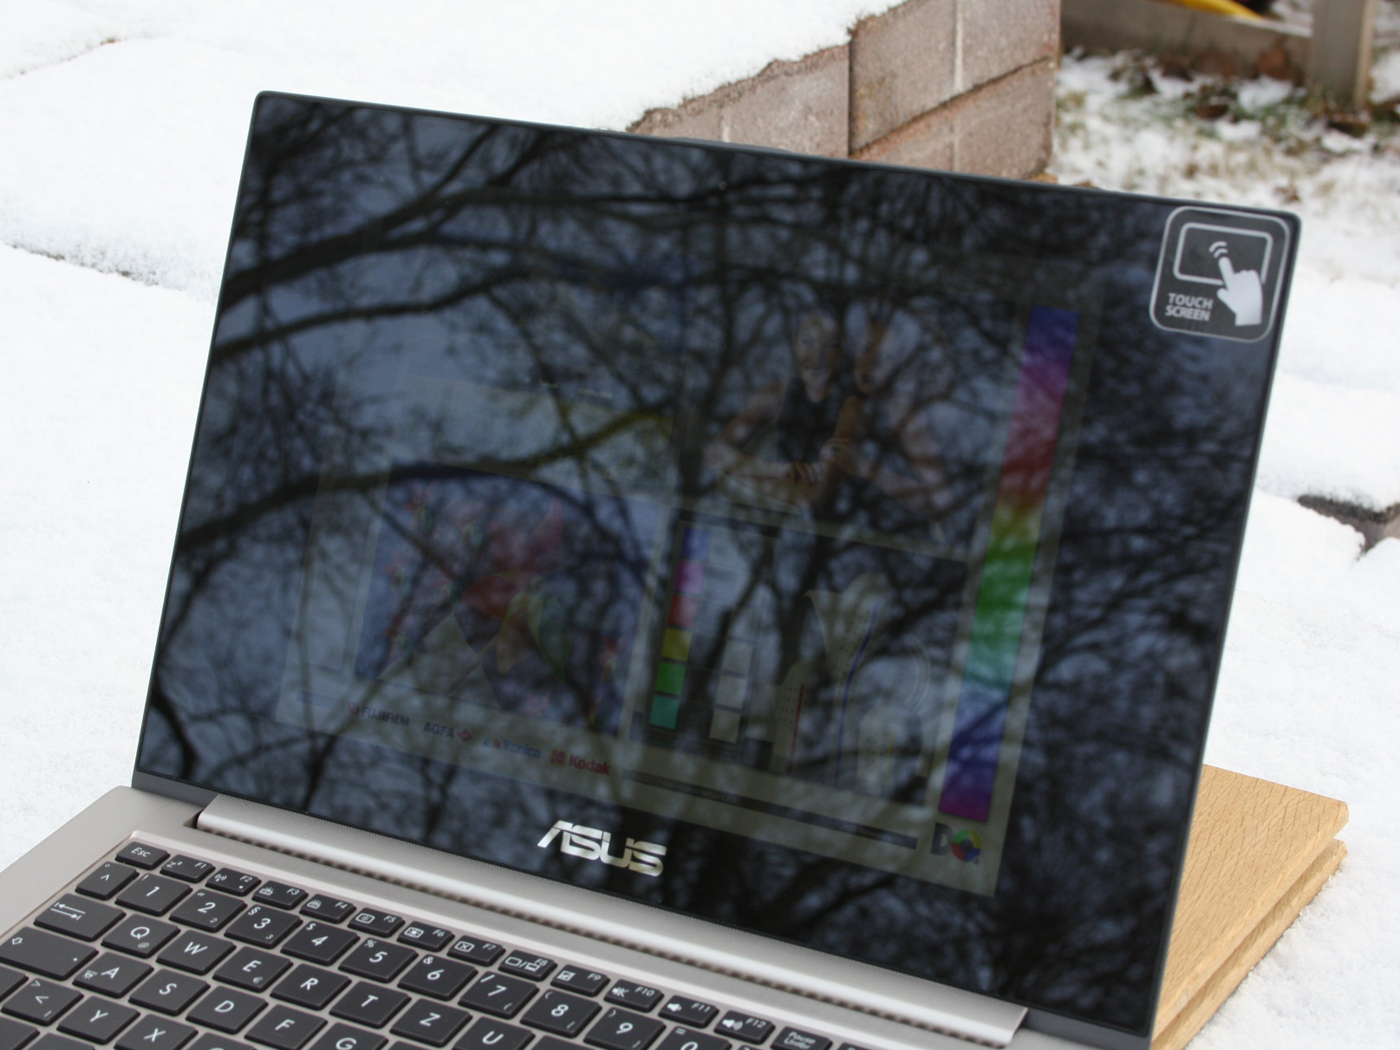 ASUS ZENBOOK Touch UX31A Windows 8 X64 Driver Download